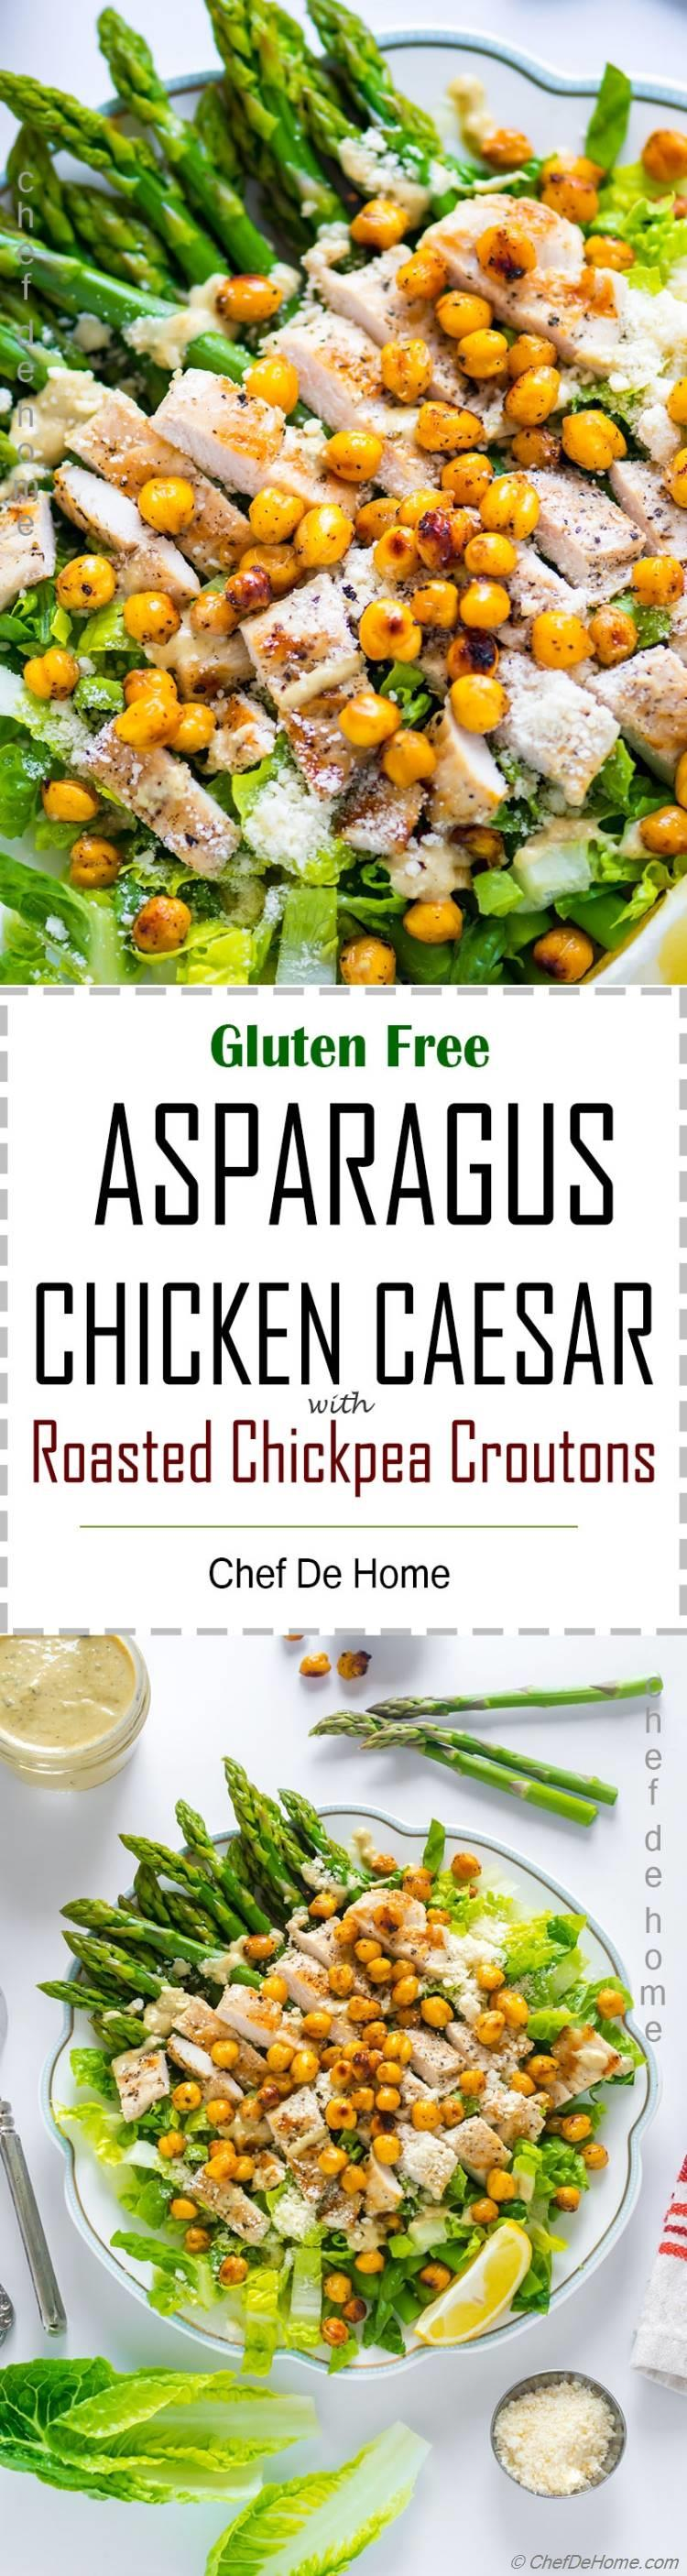 Chicken Caesar Salad With Asparagus Recipe Chefdehome Com